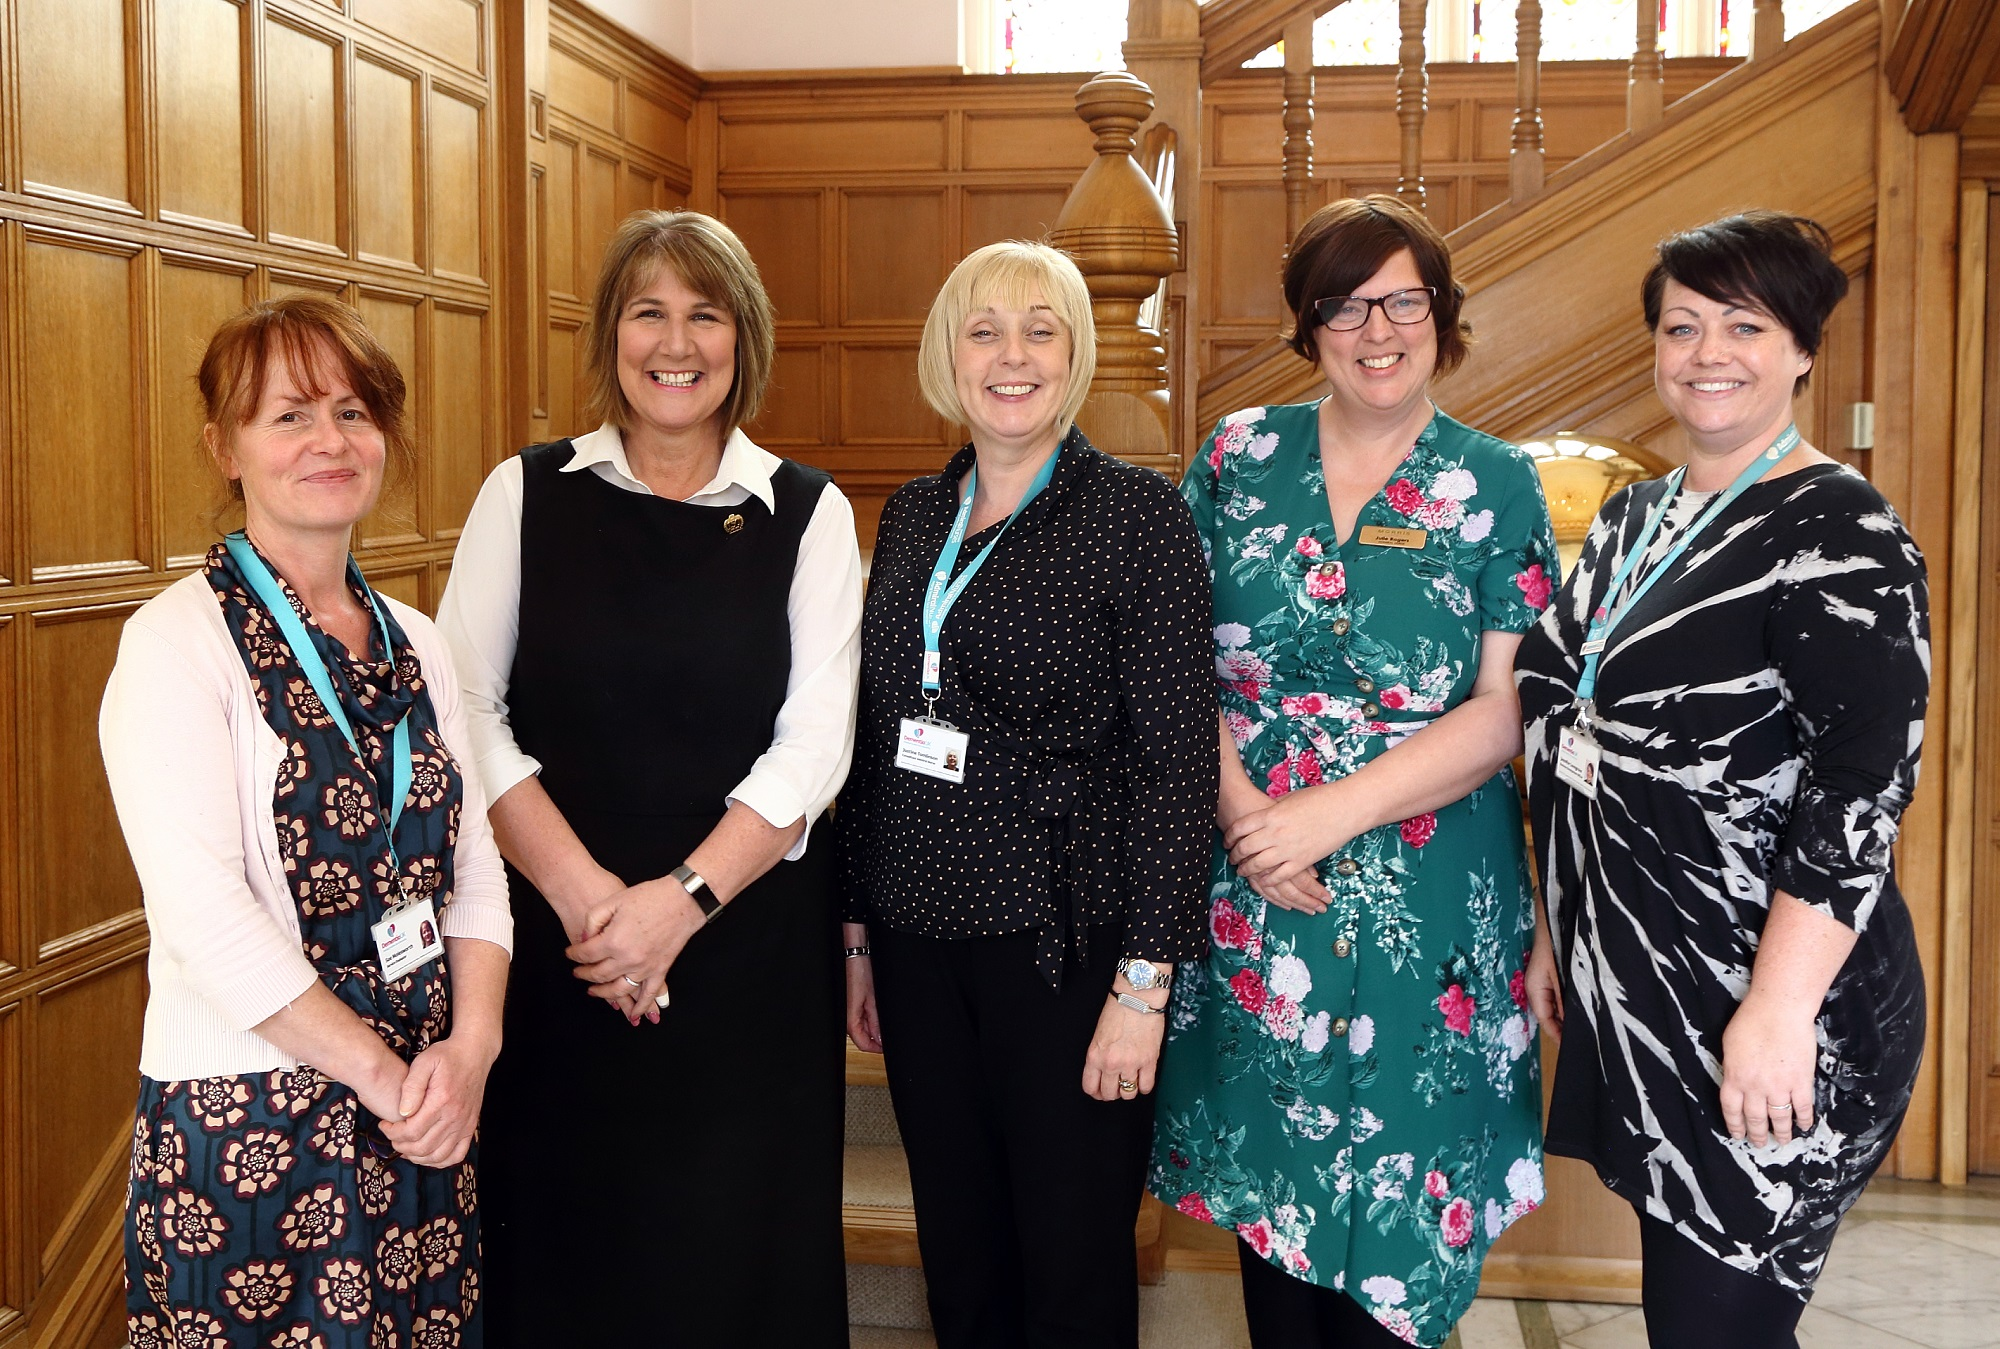 Morris Care appoints specialist Admiral Nurse for dementia support